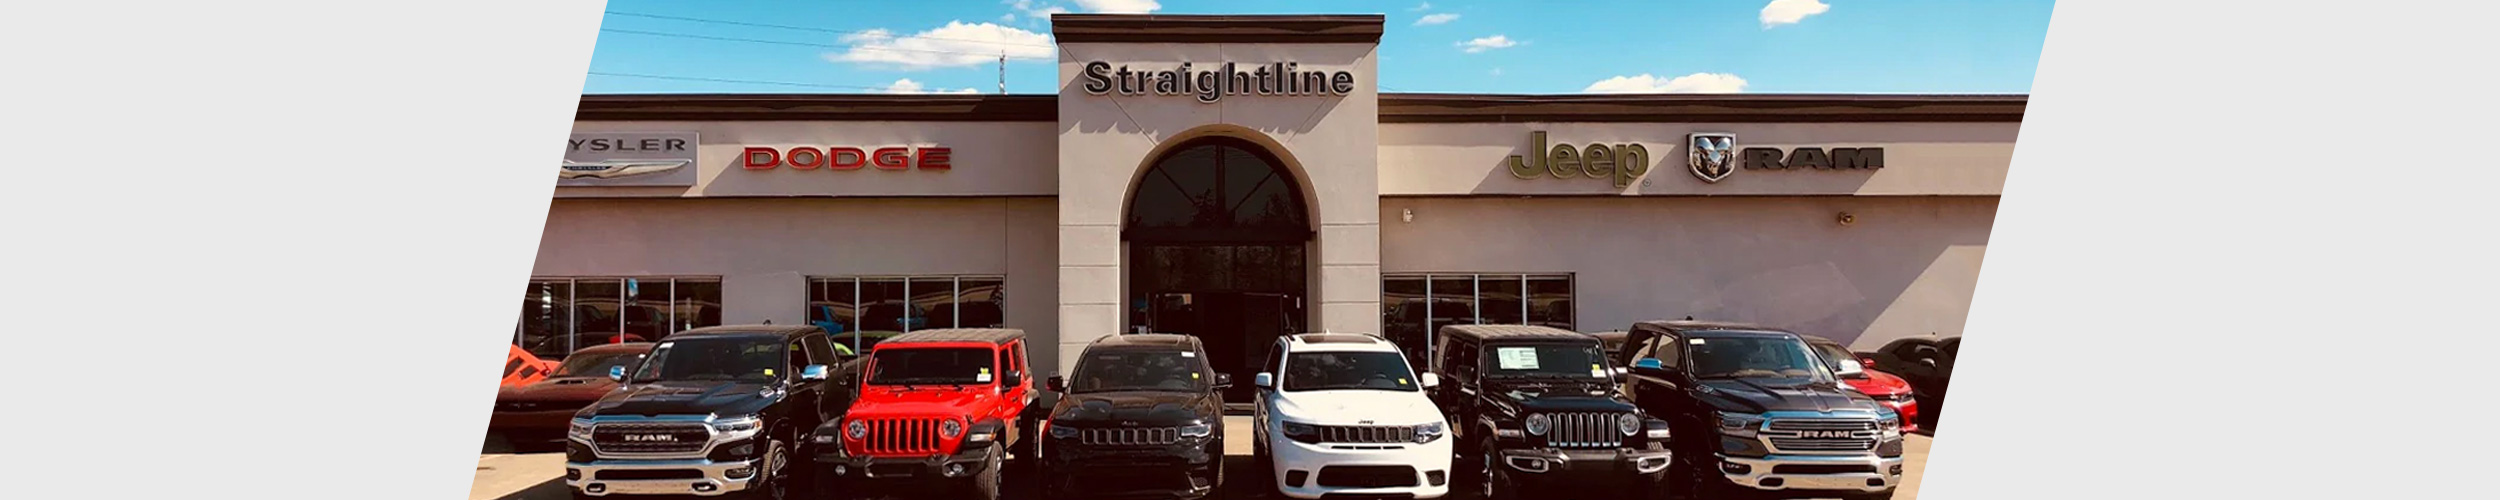 Straightline Chrysler Dealership Exterior